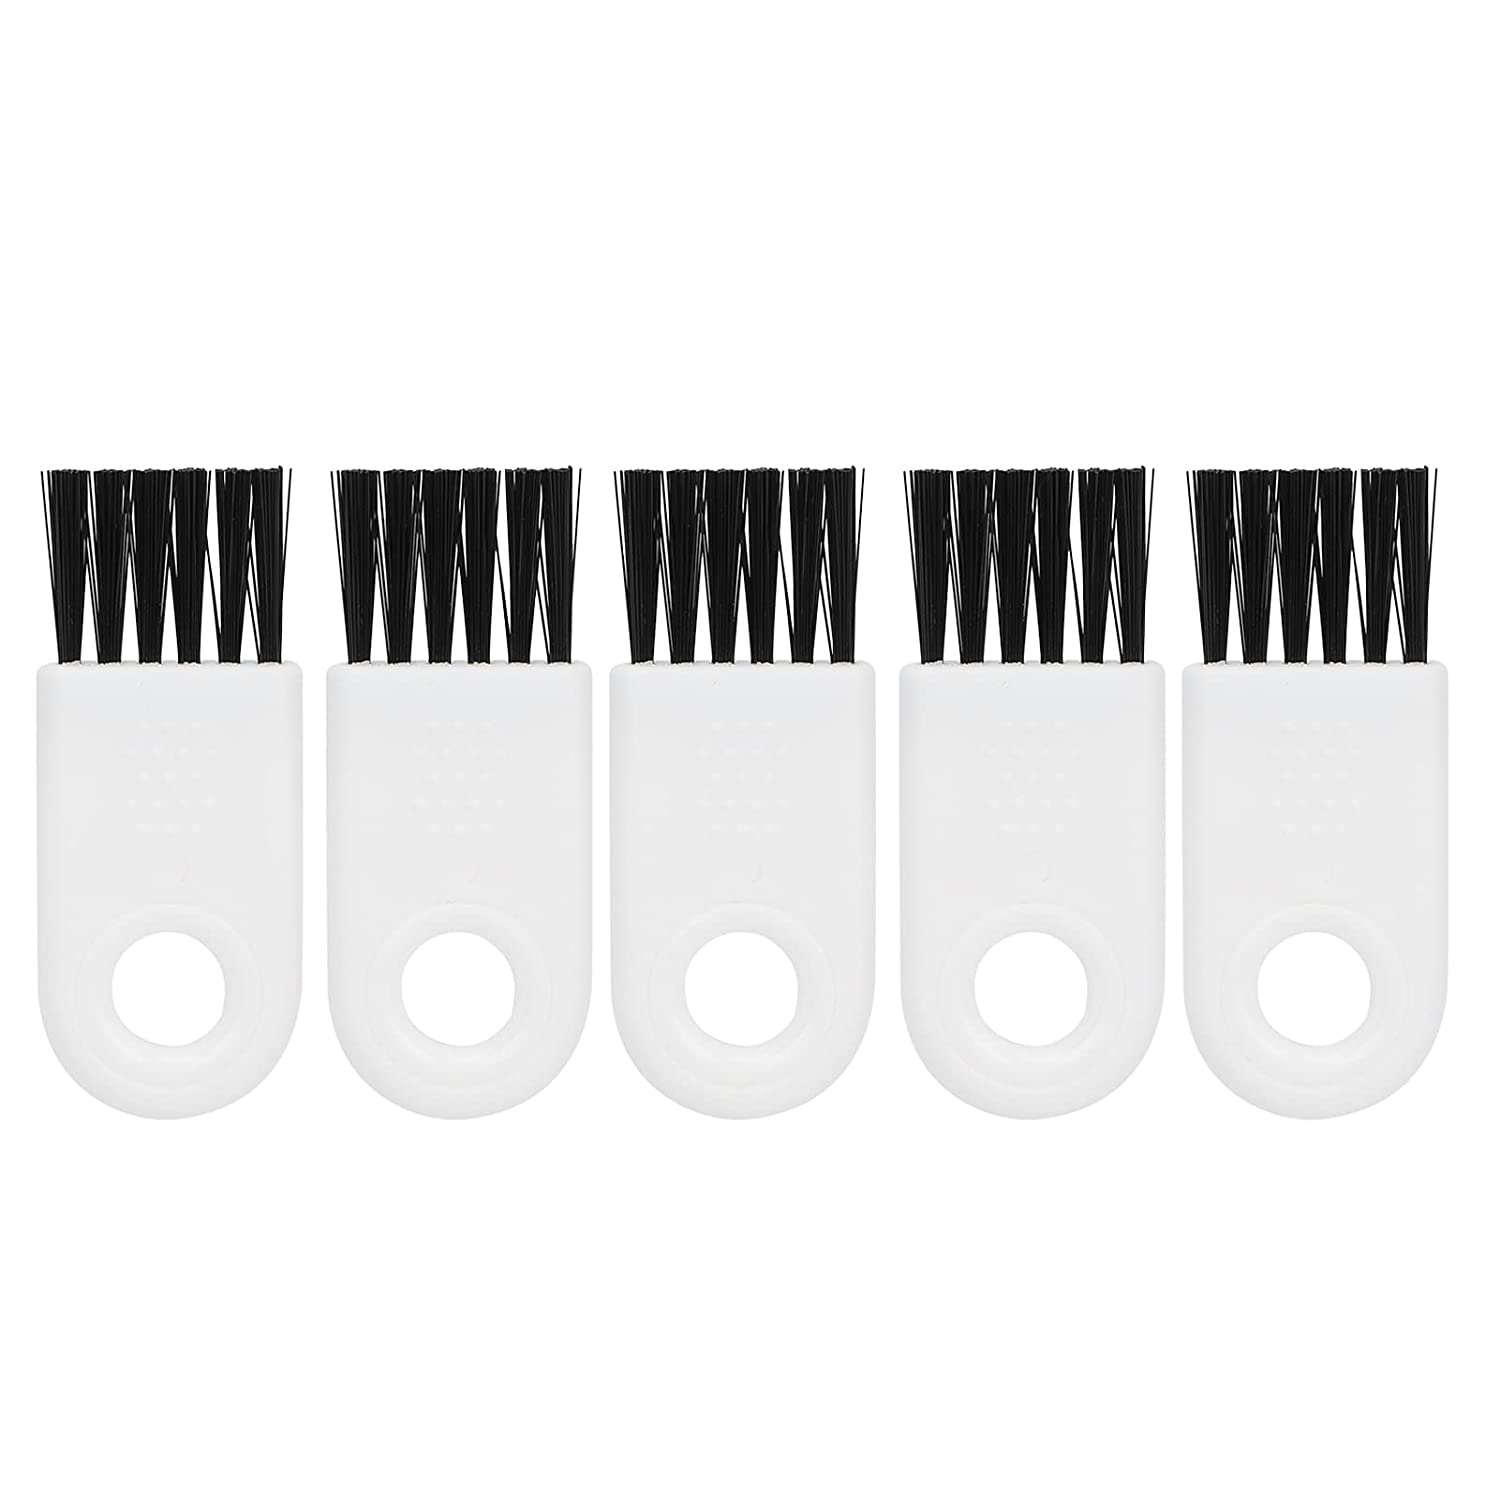 5pcs Genuine Free Shipping Shaver Cleaning Brushes Max 75% OFF Multifunctional Br Trimmer